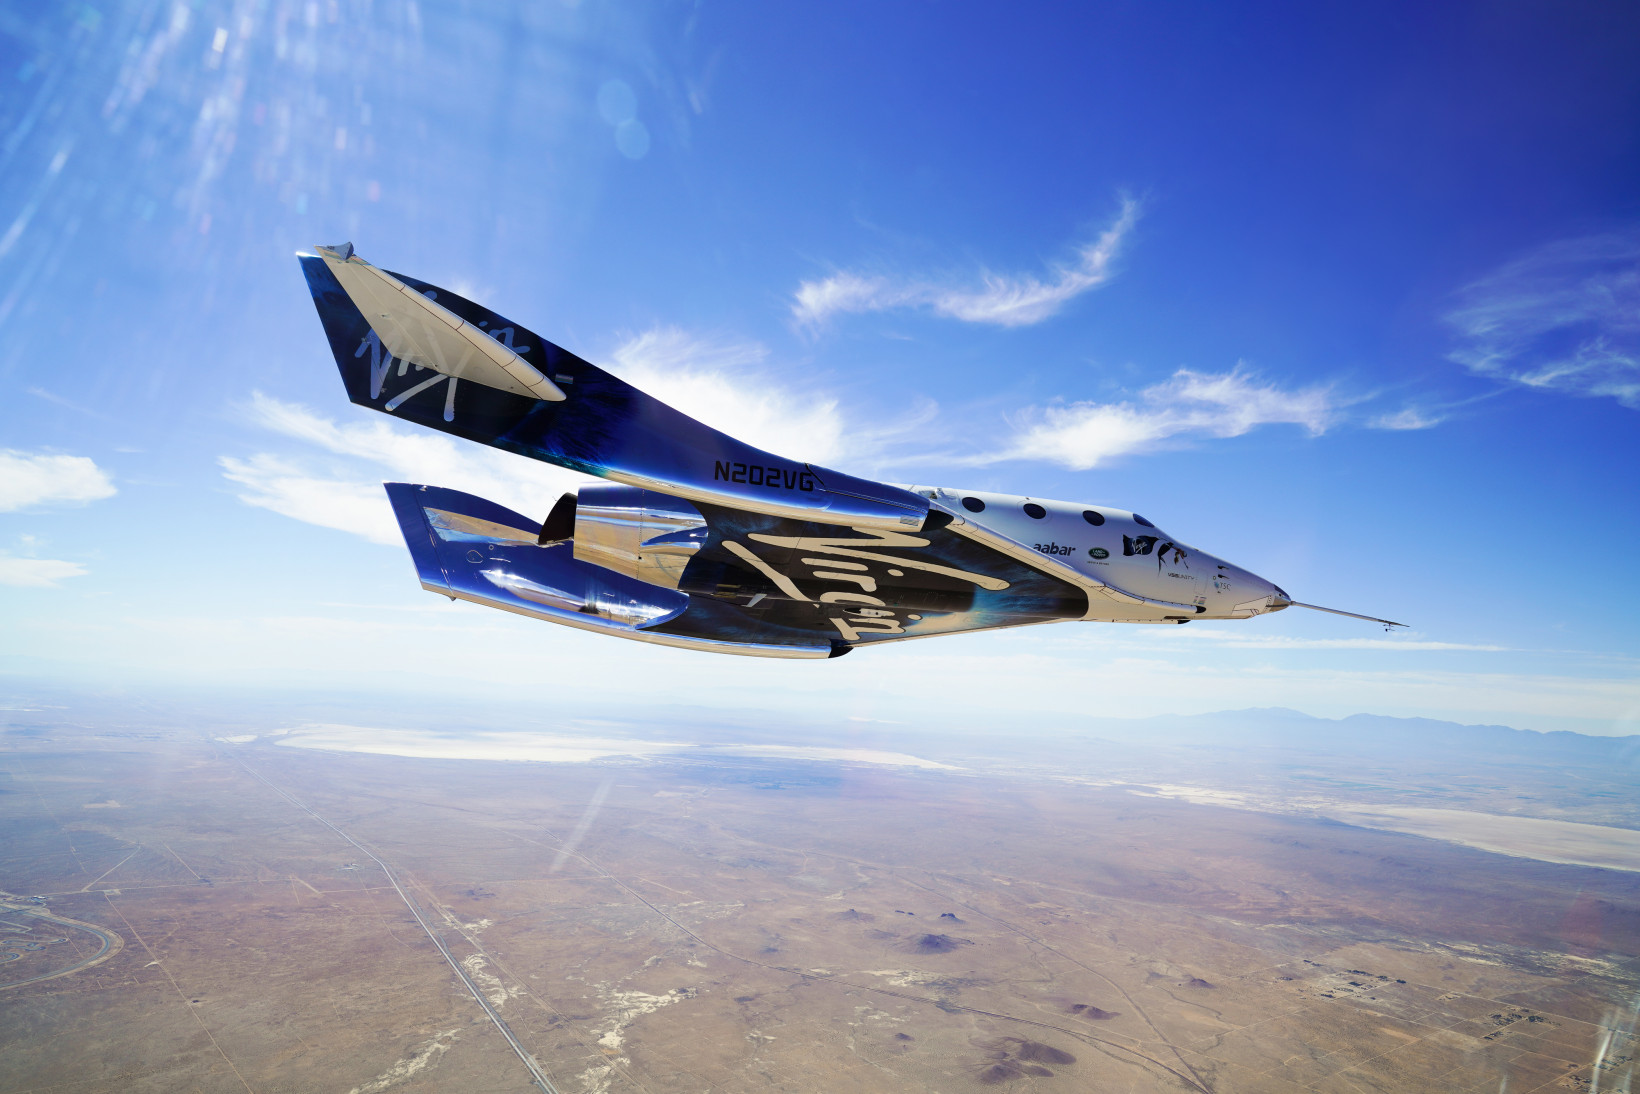 The VSS Unity spacecraft is one of the ships that Virgin Galactic plans to use for space tours.